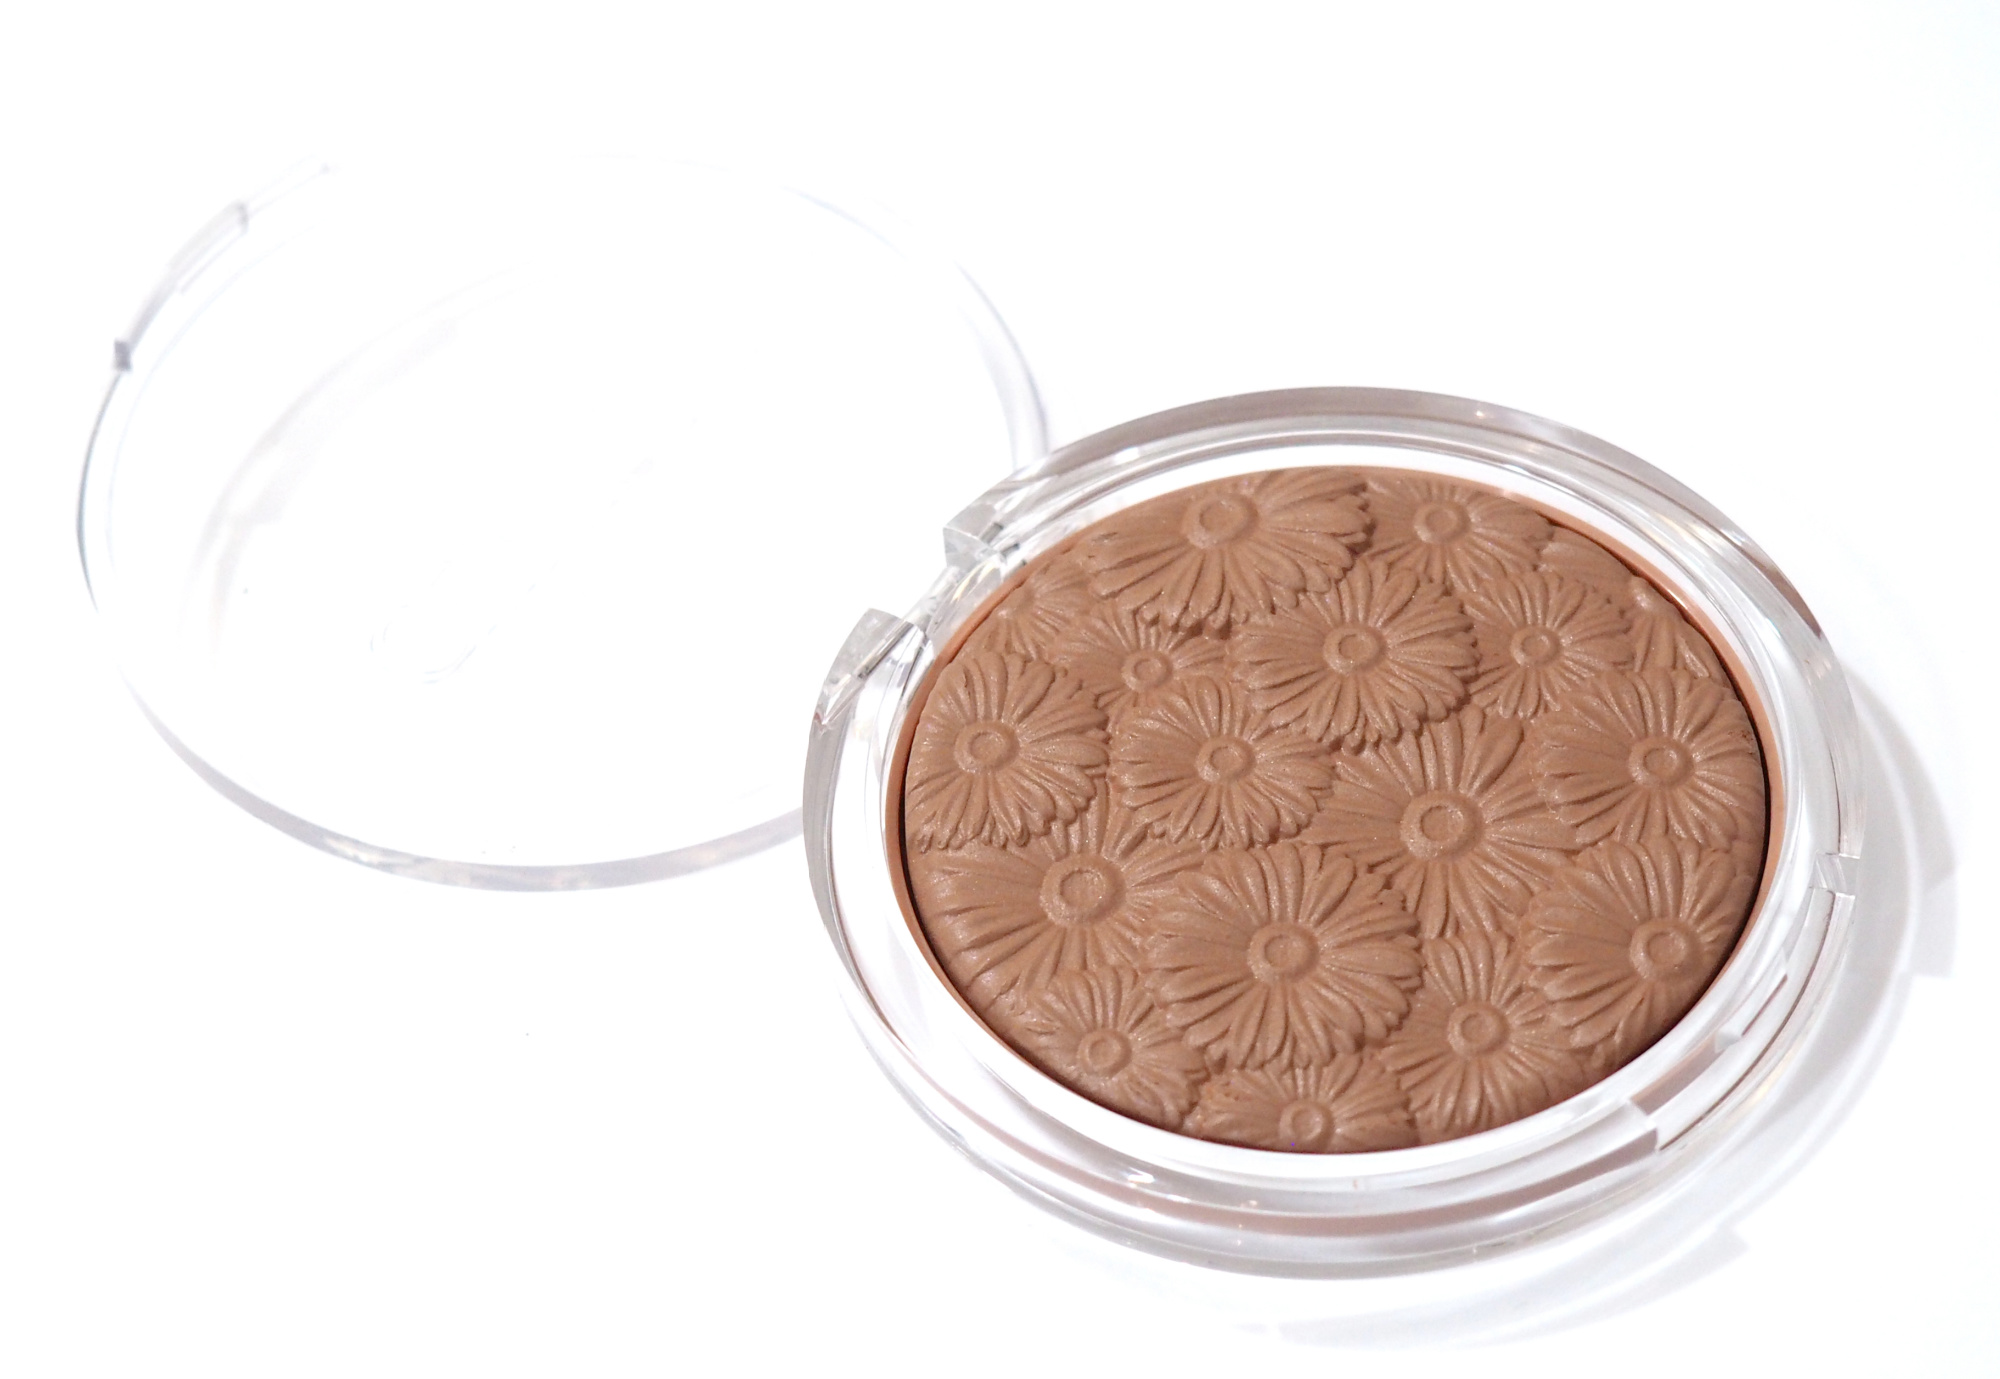 Clinique Solar Pop Powder Pop Flower Bronzer Review